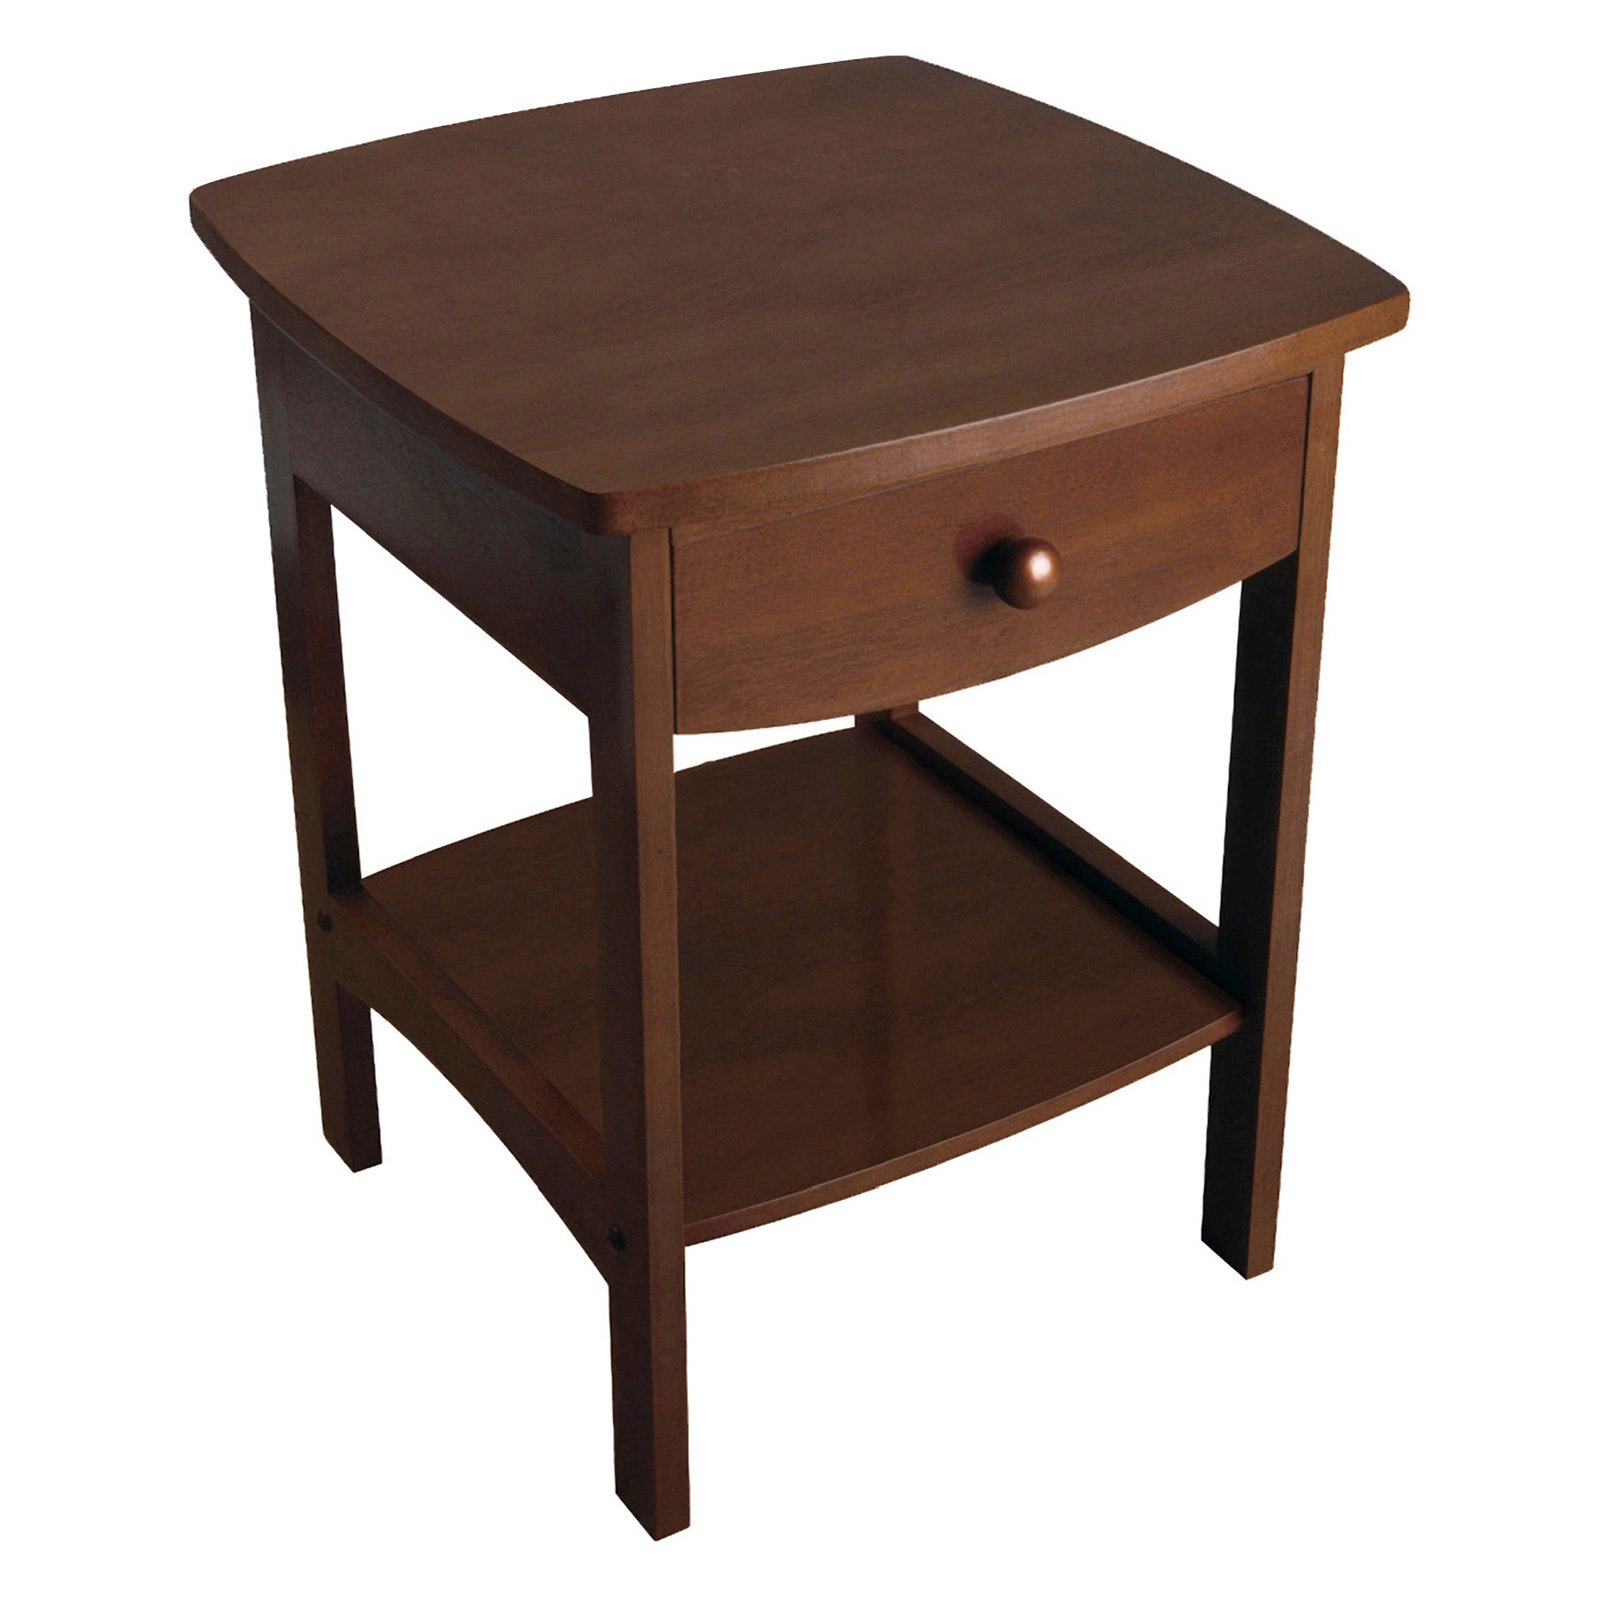 winsome trading curved drawer nightstand end table accent under west indies furniture small oak pier lamps tiffany style lamp with lighted base coffee legs ikea bathroom wardrobe